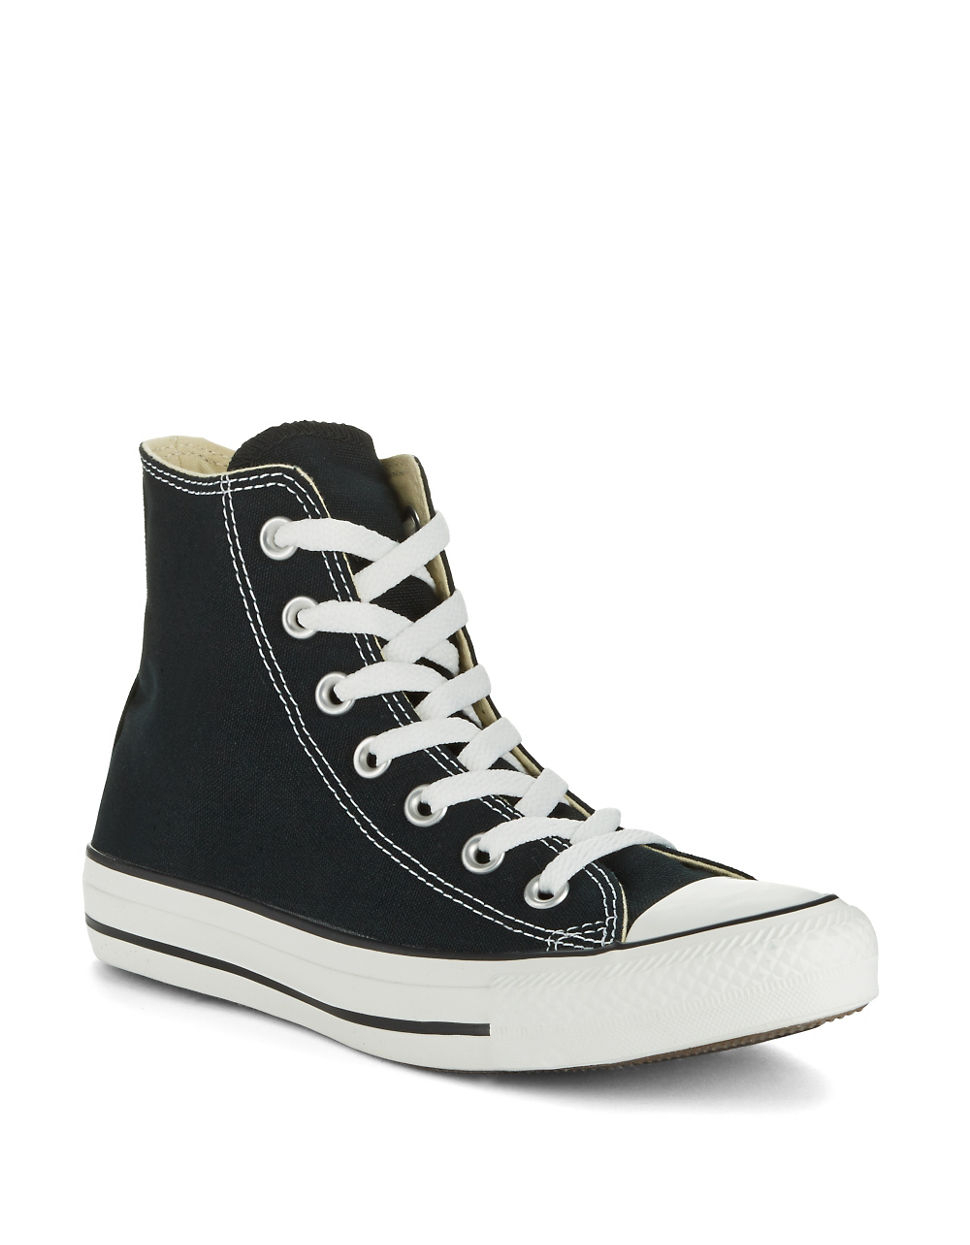 All Black High Top Converse - results from brands Converse, Reebok, Florsheim, products like Converse Chuck Taylor Dainty Low Top Sneaker - Women's, Converse Women's Jack Purcell Cp Ox Casual Sneakers from Finish Line - Black 5, Converse Chuck Taylor(r) All Star(r) Dainty Ox (Black) Women's Classic Shoes, Shoes.